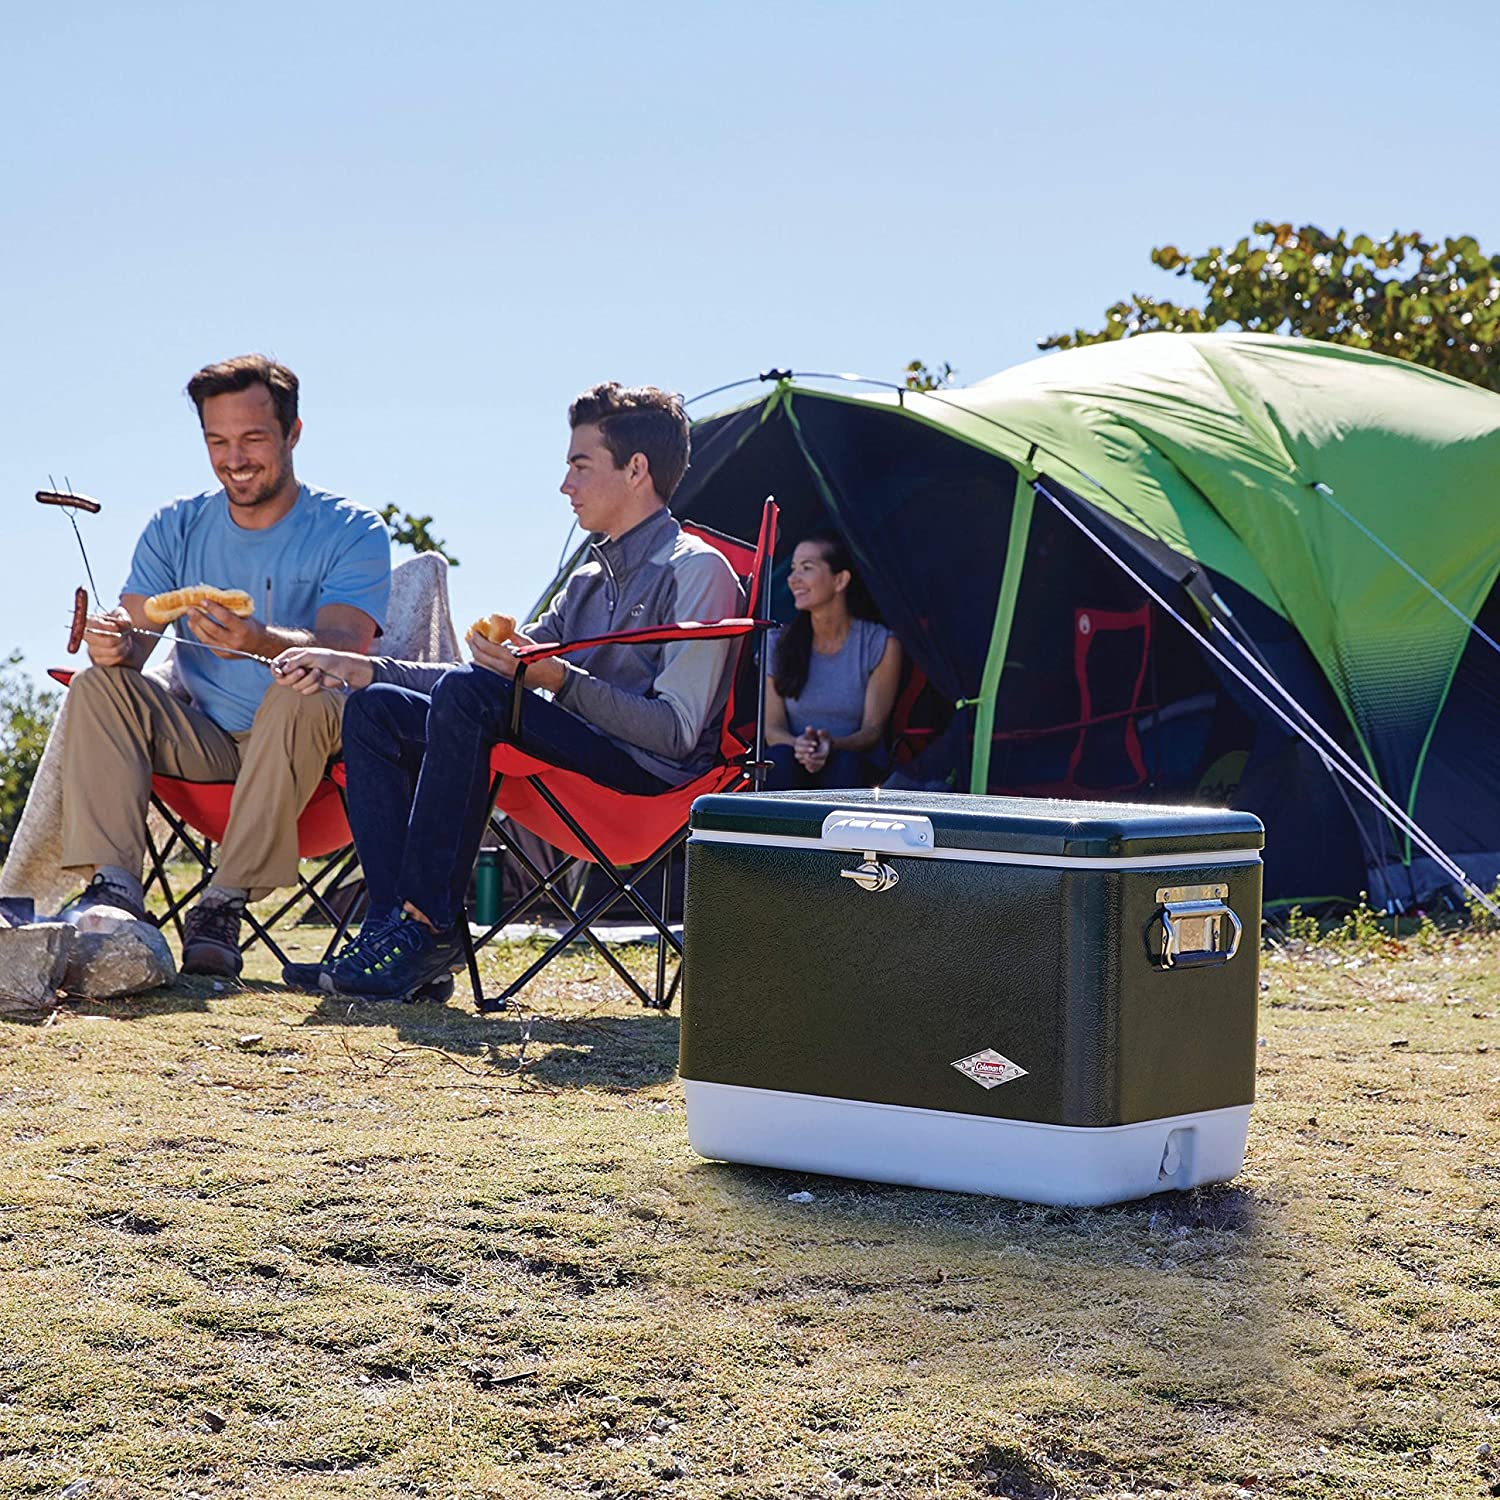 1. Coleman cooler for camping, BBQs and outdoor activities: